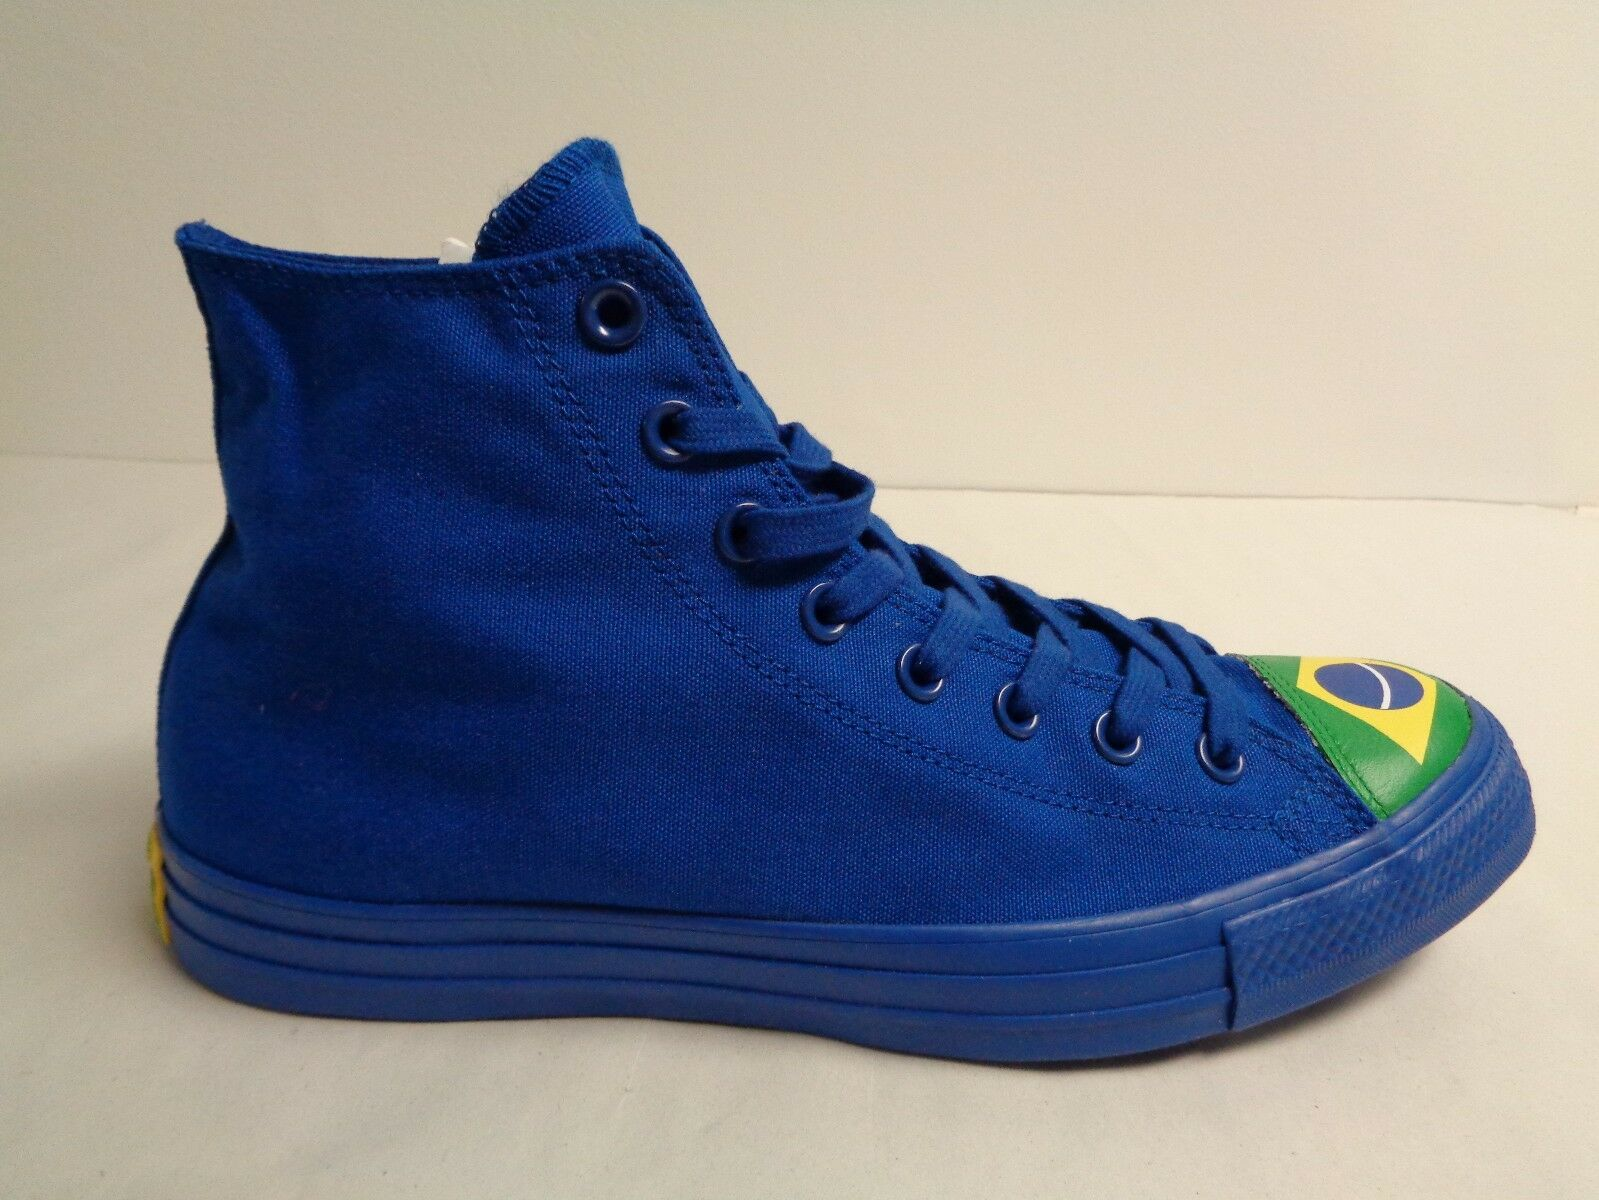 e196dfb14c5d ... Converse Size 11 Mens CTAS HI Blue Green Green Green Brazil Flag  Sneakers New Unisex Shoes ...